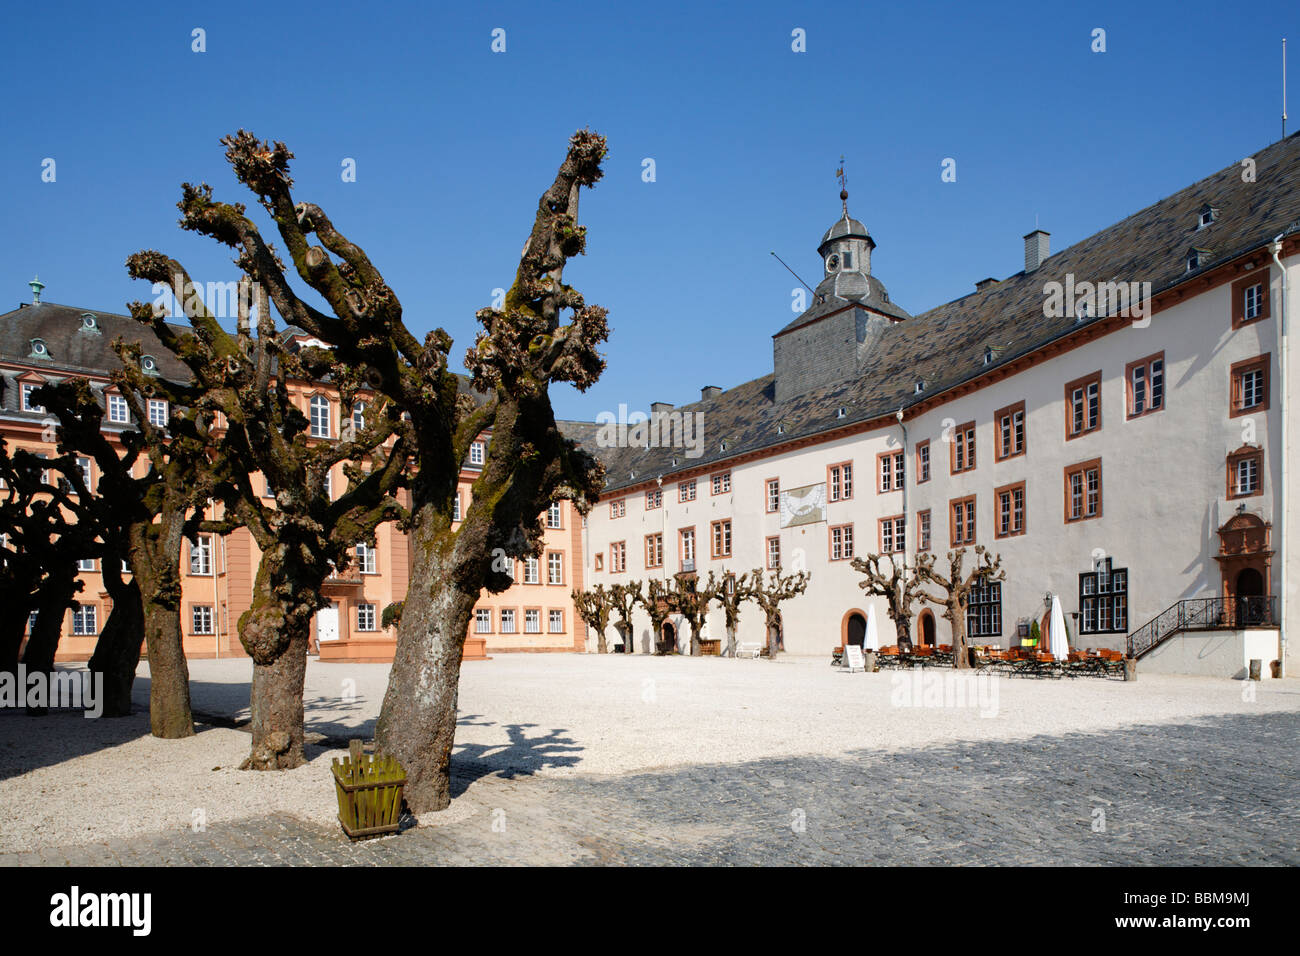 Castle square with cut willows and north wing, Berleburg Castle, Bad Berleburg, district of Siegen-Wittgenstein, - Stock Image